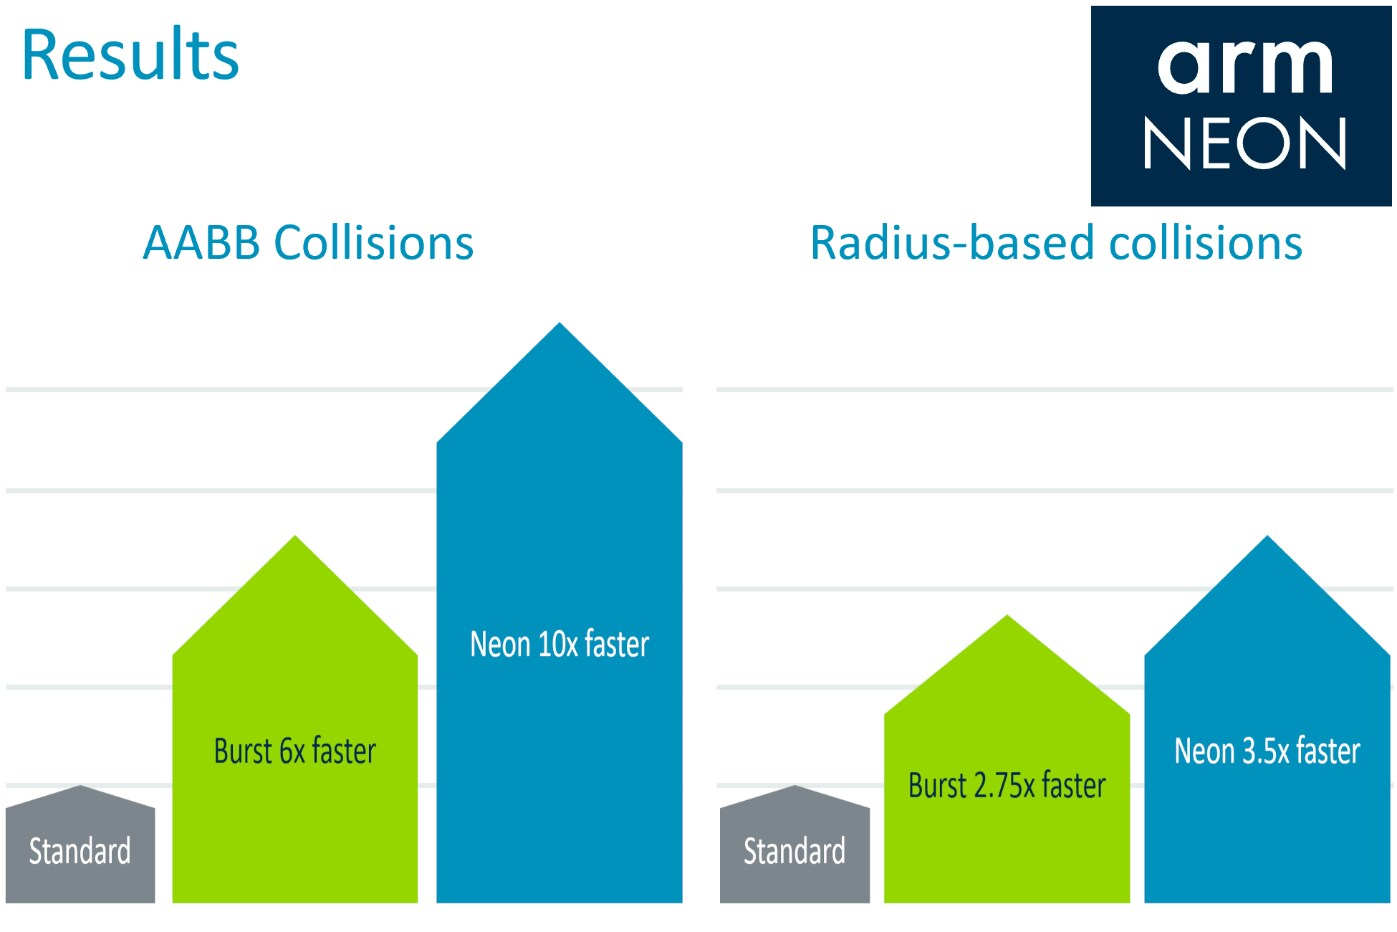 chart showing neon is 10X faster in AABB collisions and 3.5X faster in arm neon